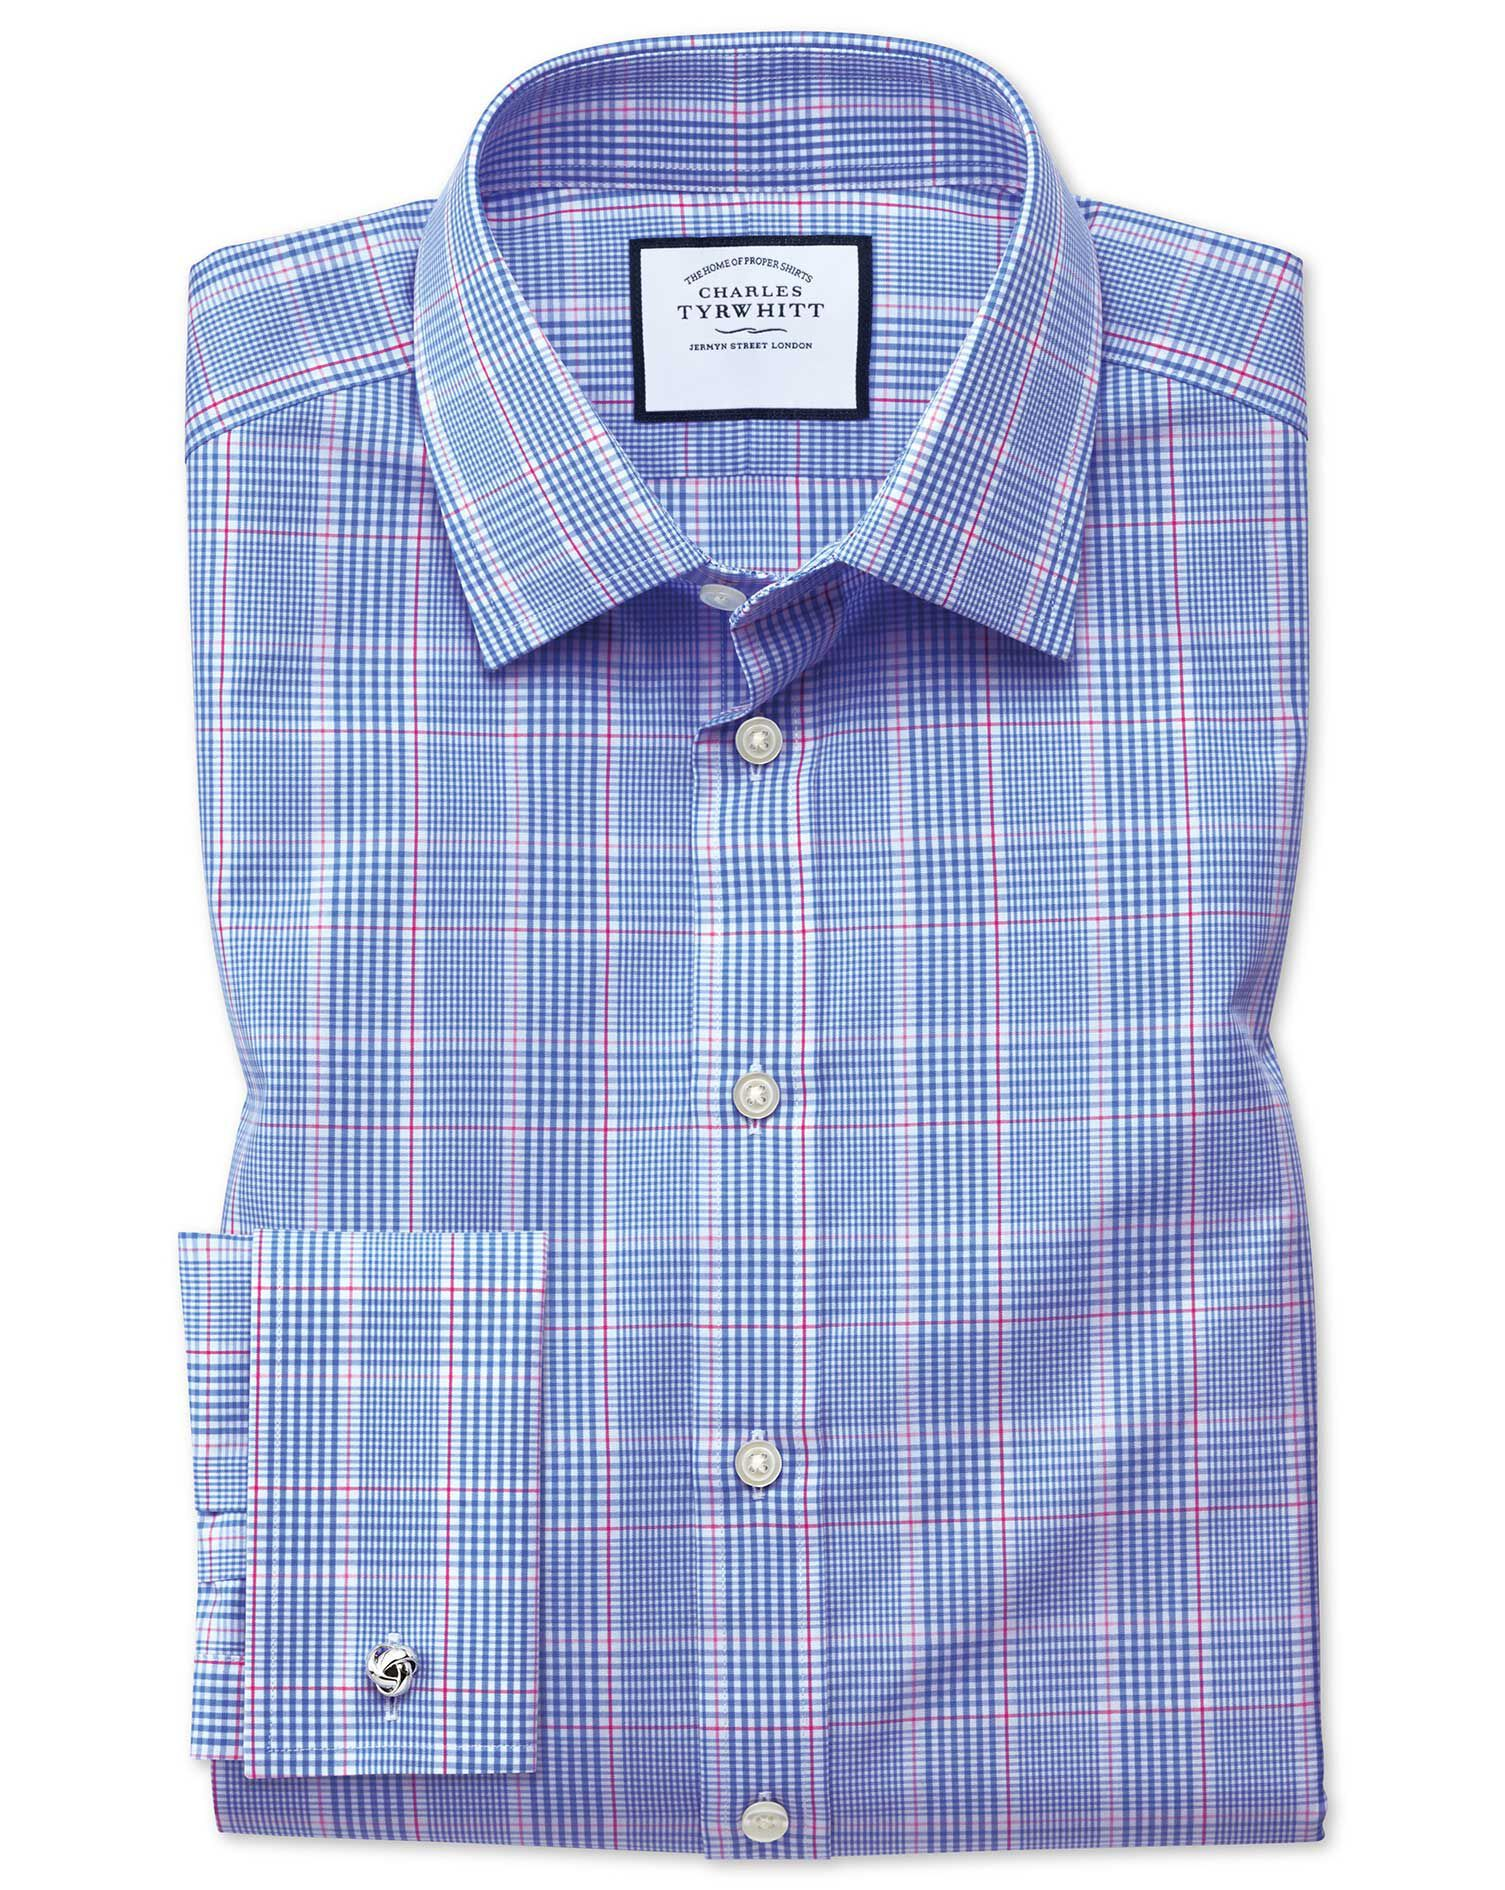 Extra Slim Fit Prince Of Wales Blue Cotton Formal Shirt Double Cuff Size 14.5/32 by Charles Tyrwhitt